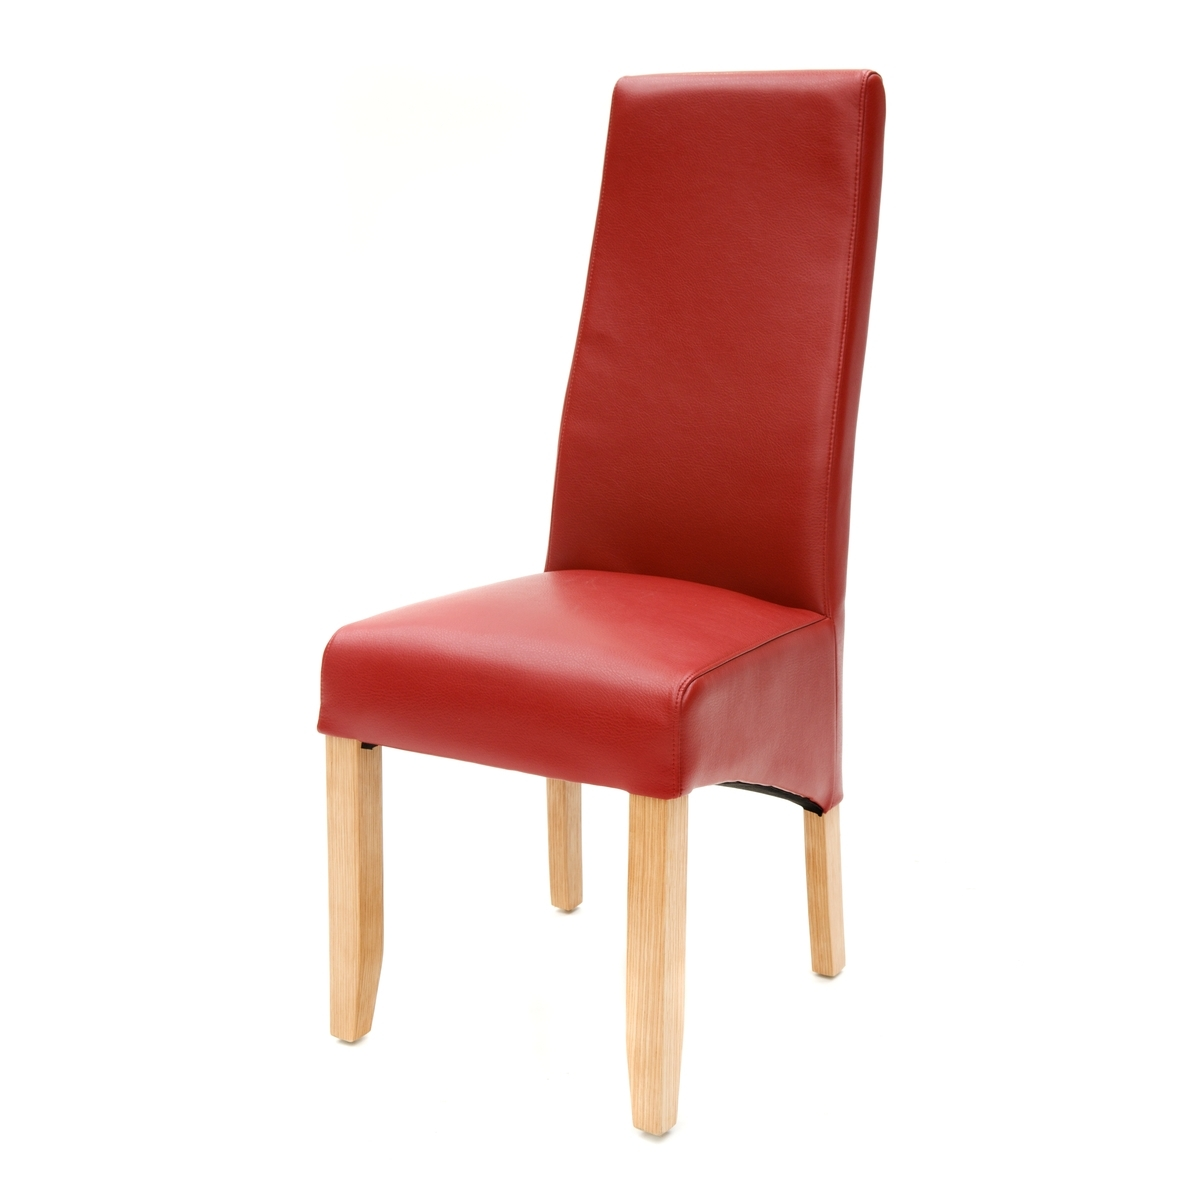 Preferred Wavey Dining Chair – Scs Endurance Mirage Red – Willis & Gambier Outlet Pertaining To Scs Dining Furniture (View 15 of 25)